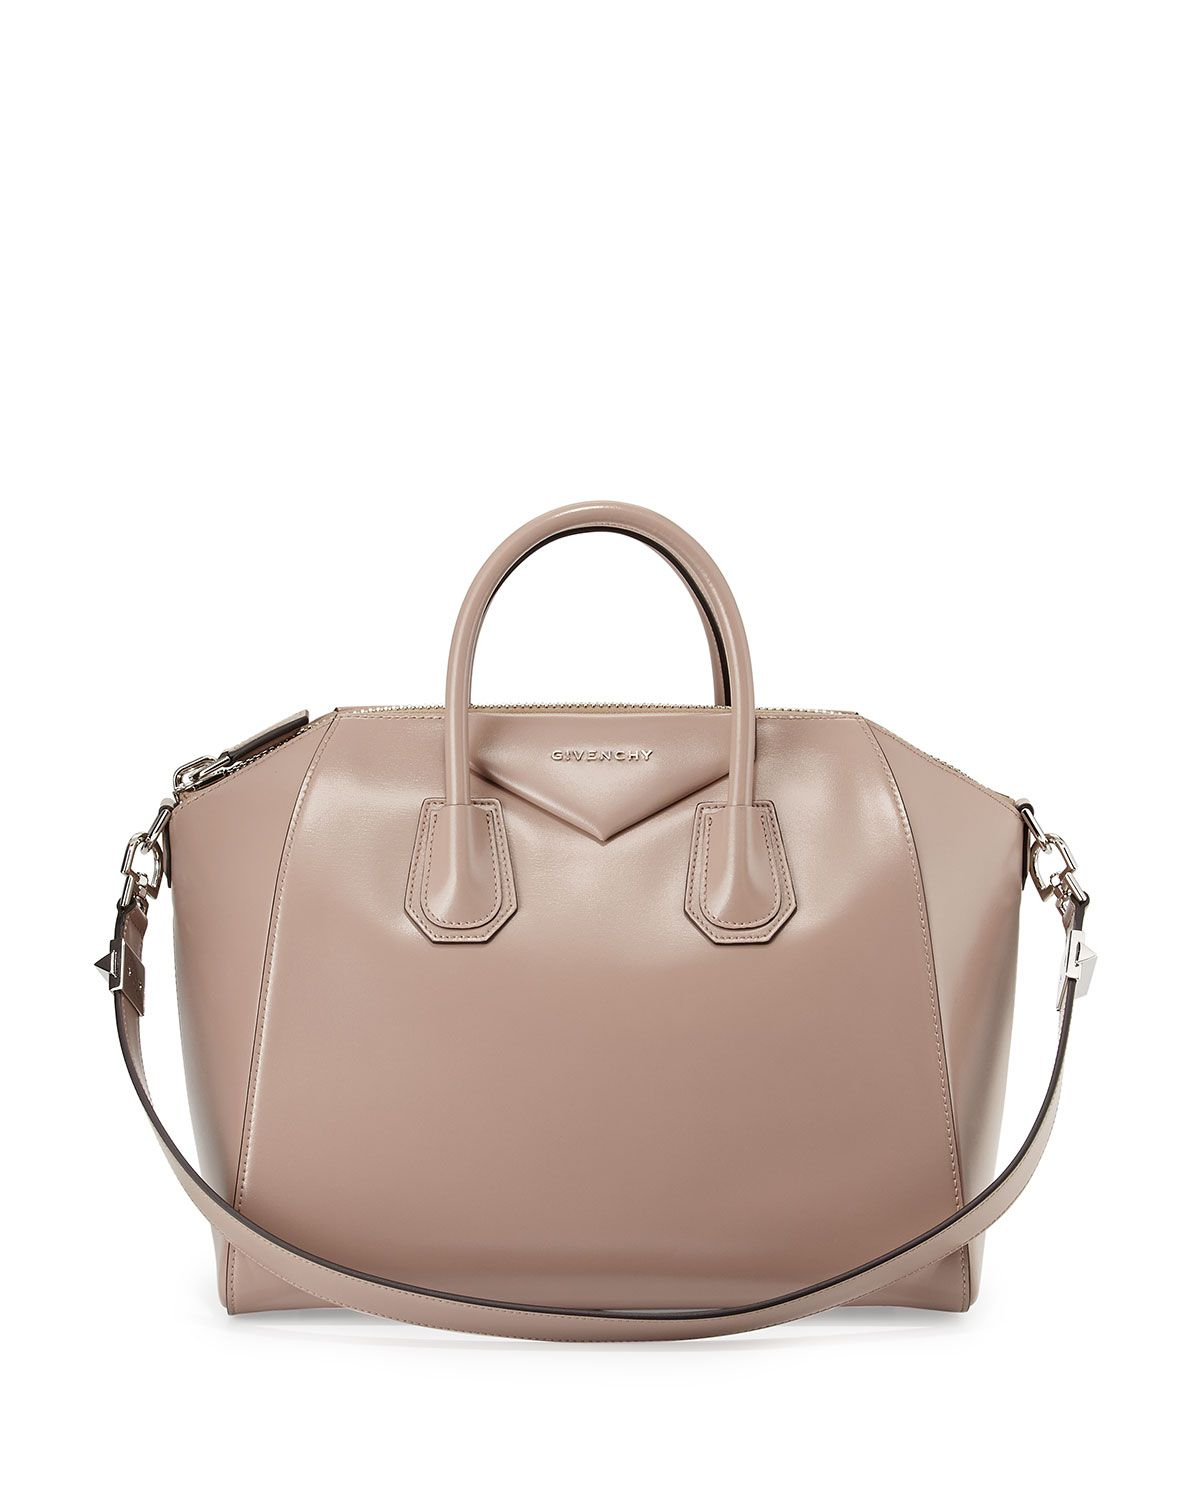 Givenchy Antigona Medium in Linen... Next on my list  )  10437f1285160